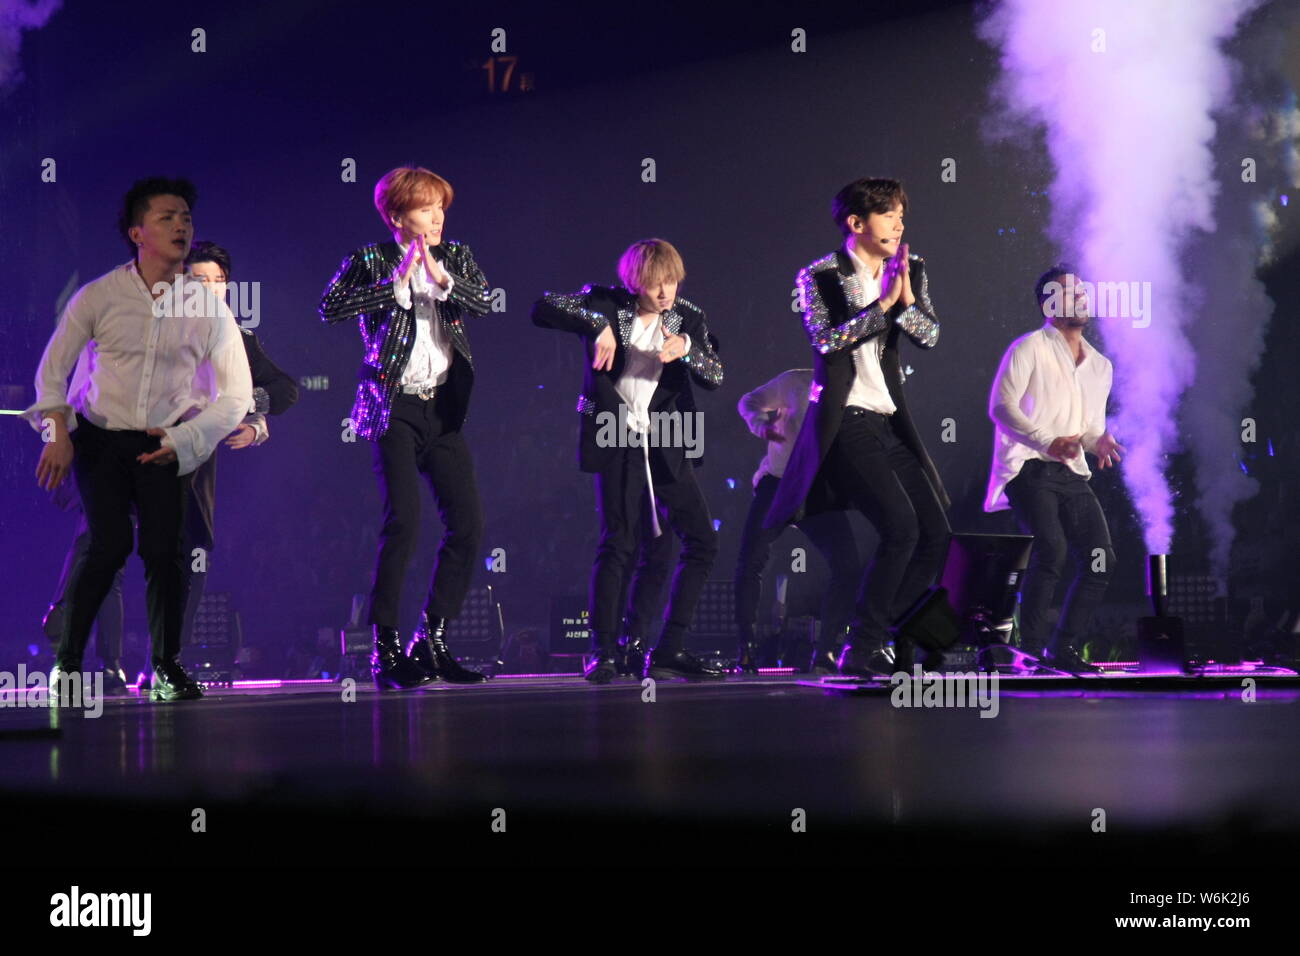 Members of South Korean boy band Super Junior perform during